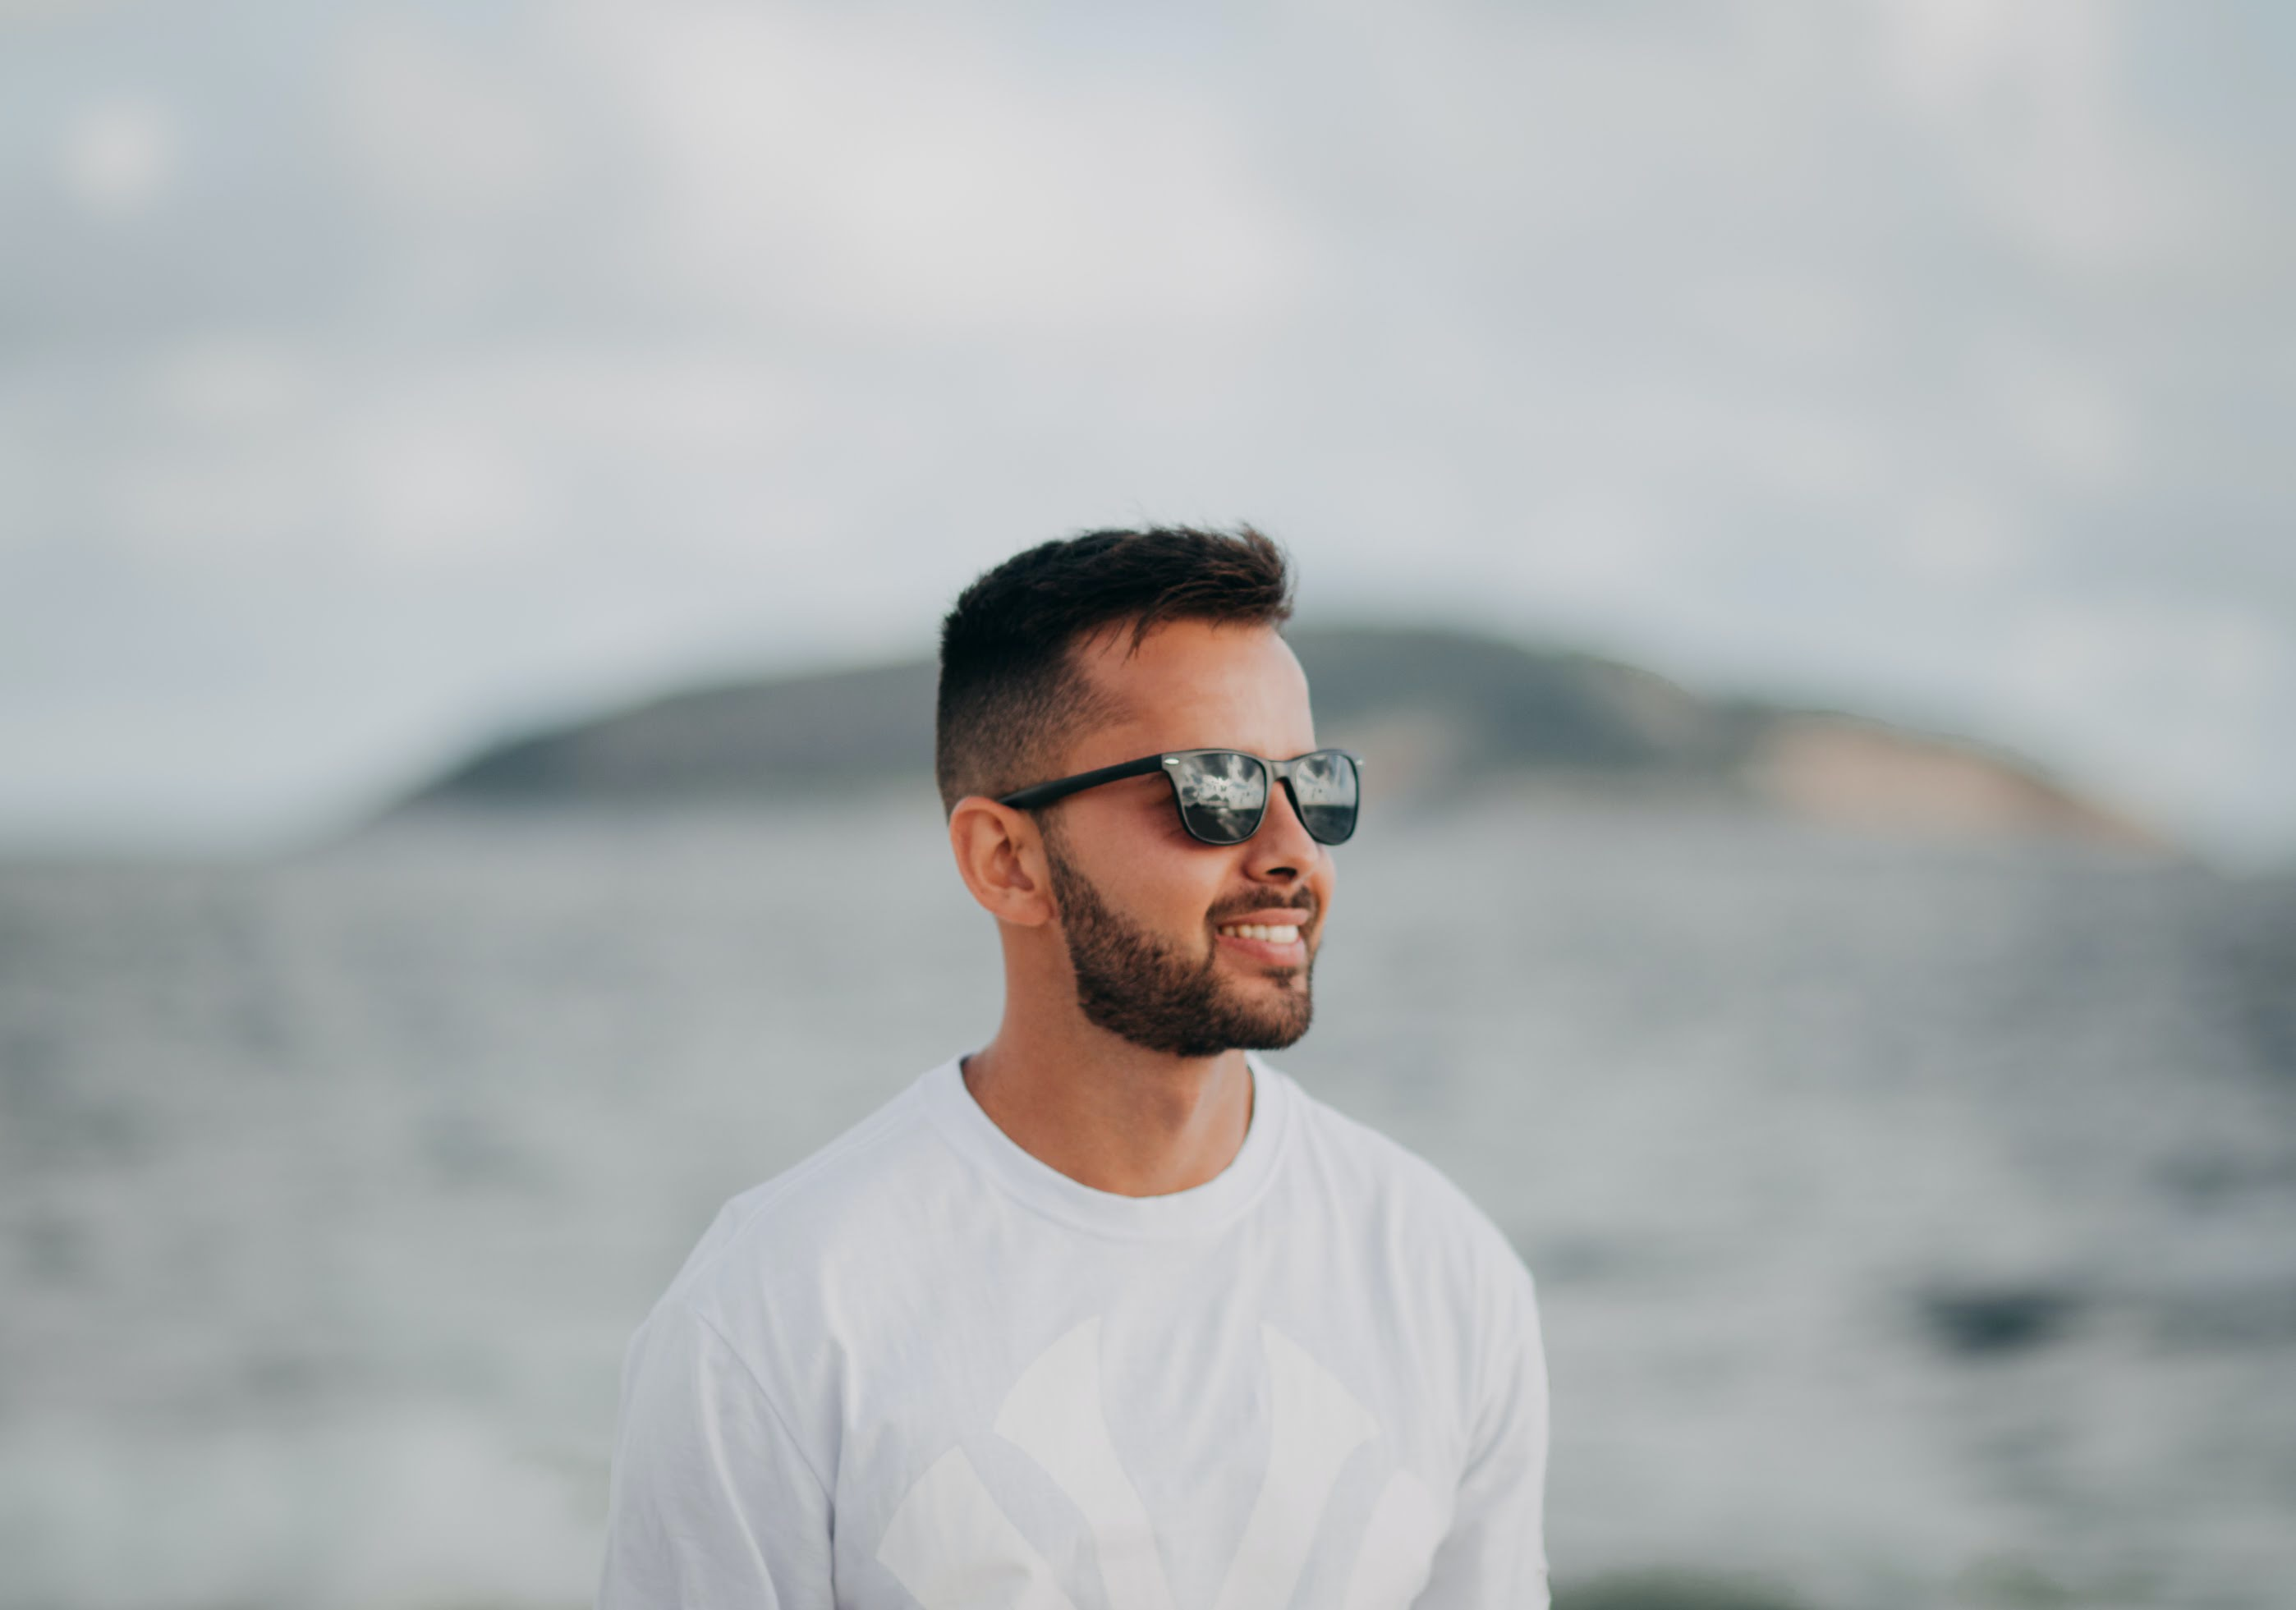 selective focus photography of smiling man in white crew-neck New York Yankers shirt and black sunglasses